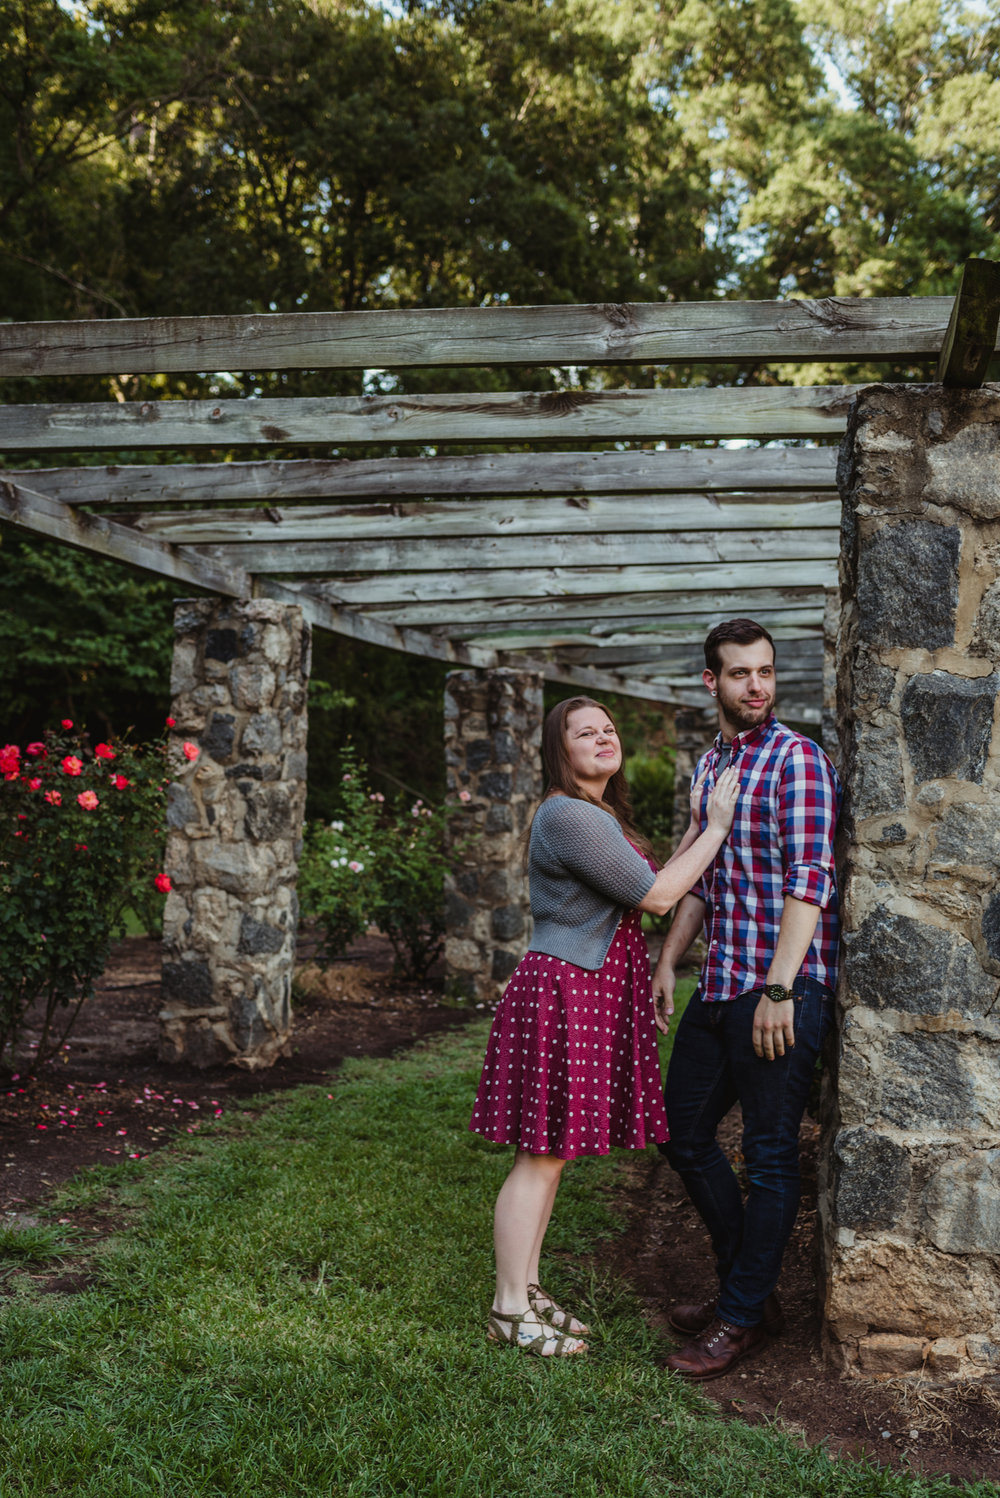 The bride and groom to be pretend to be serious under the trellis while at the Raleigh Rose Garden during their engagement session with Rose Trail Images.